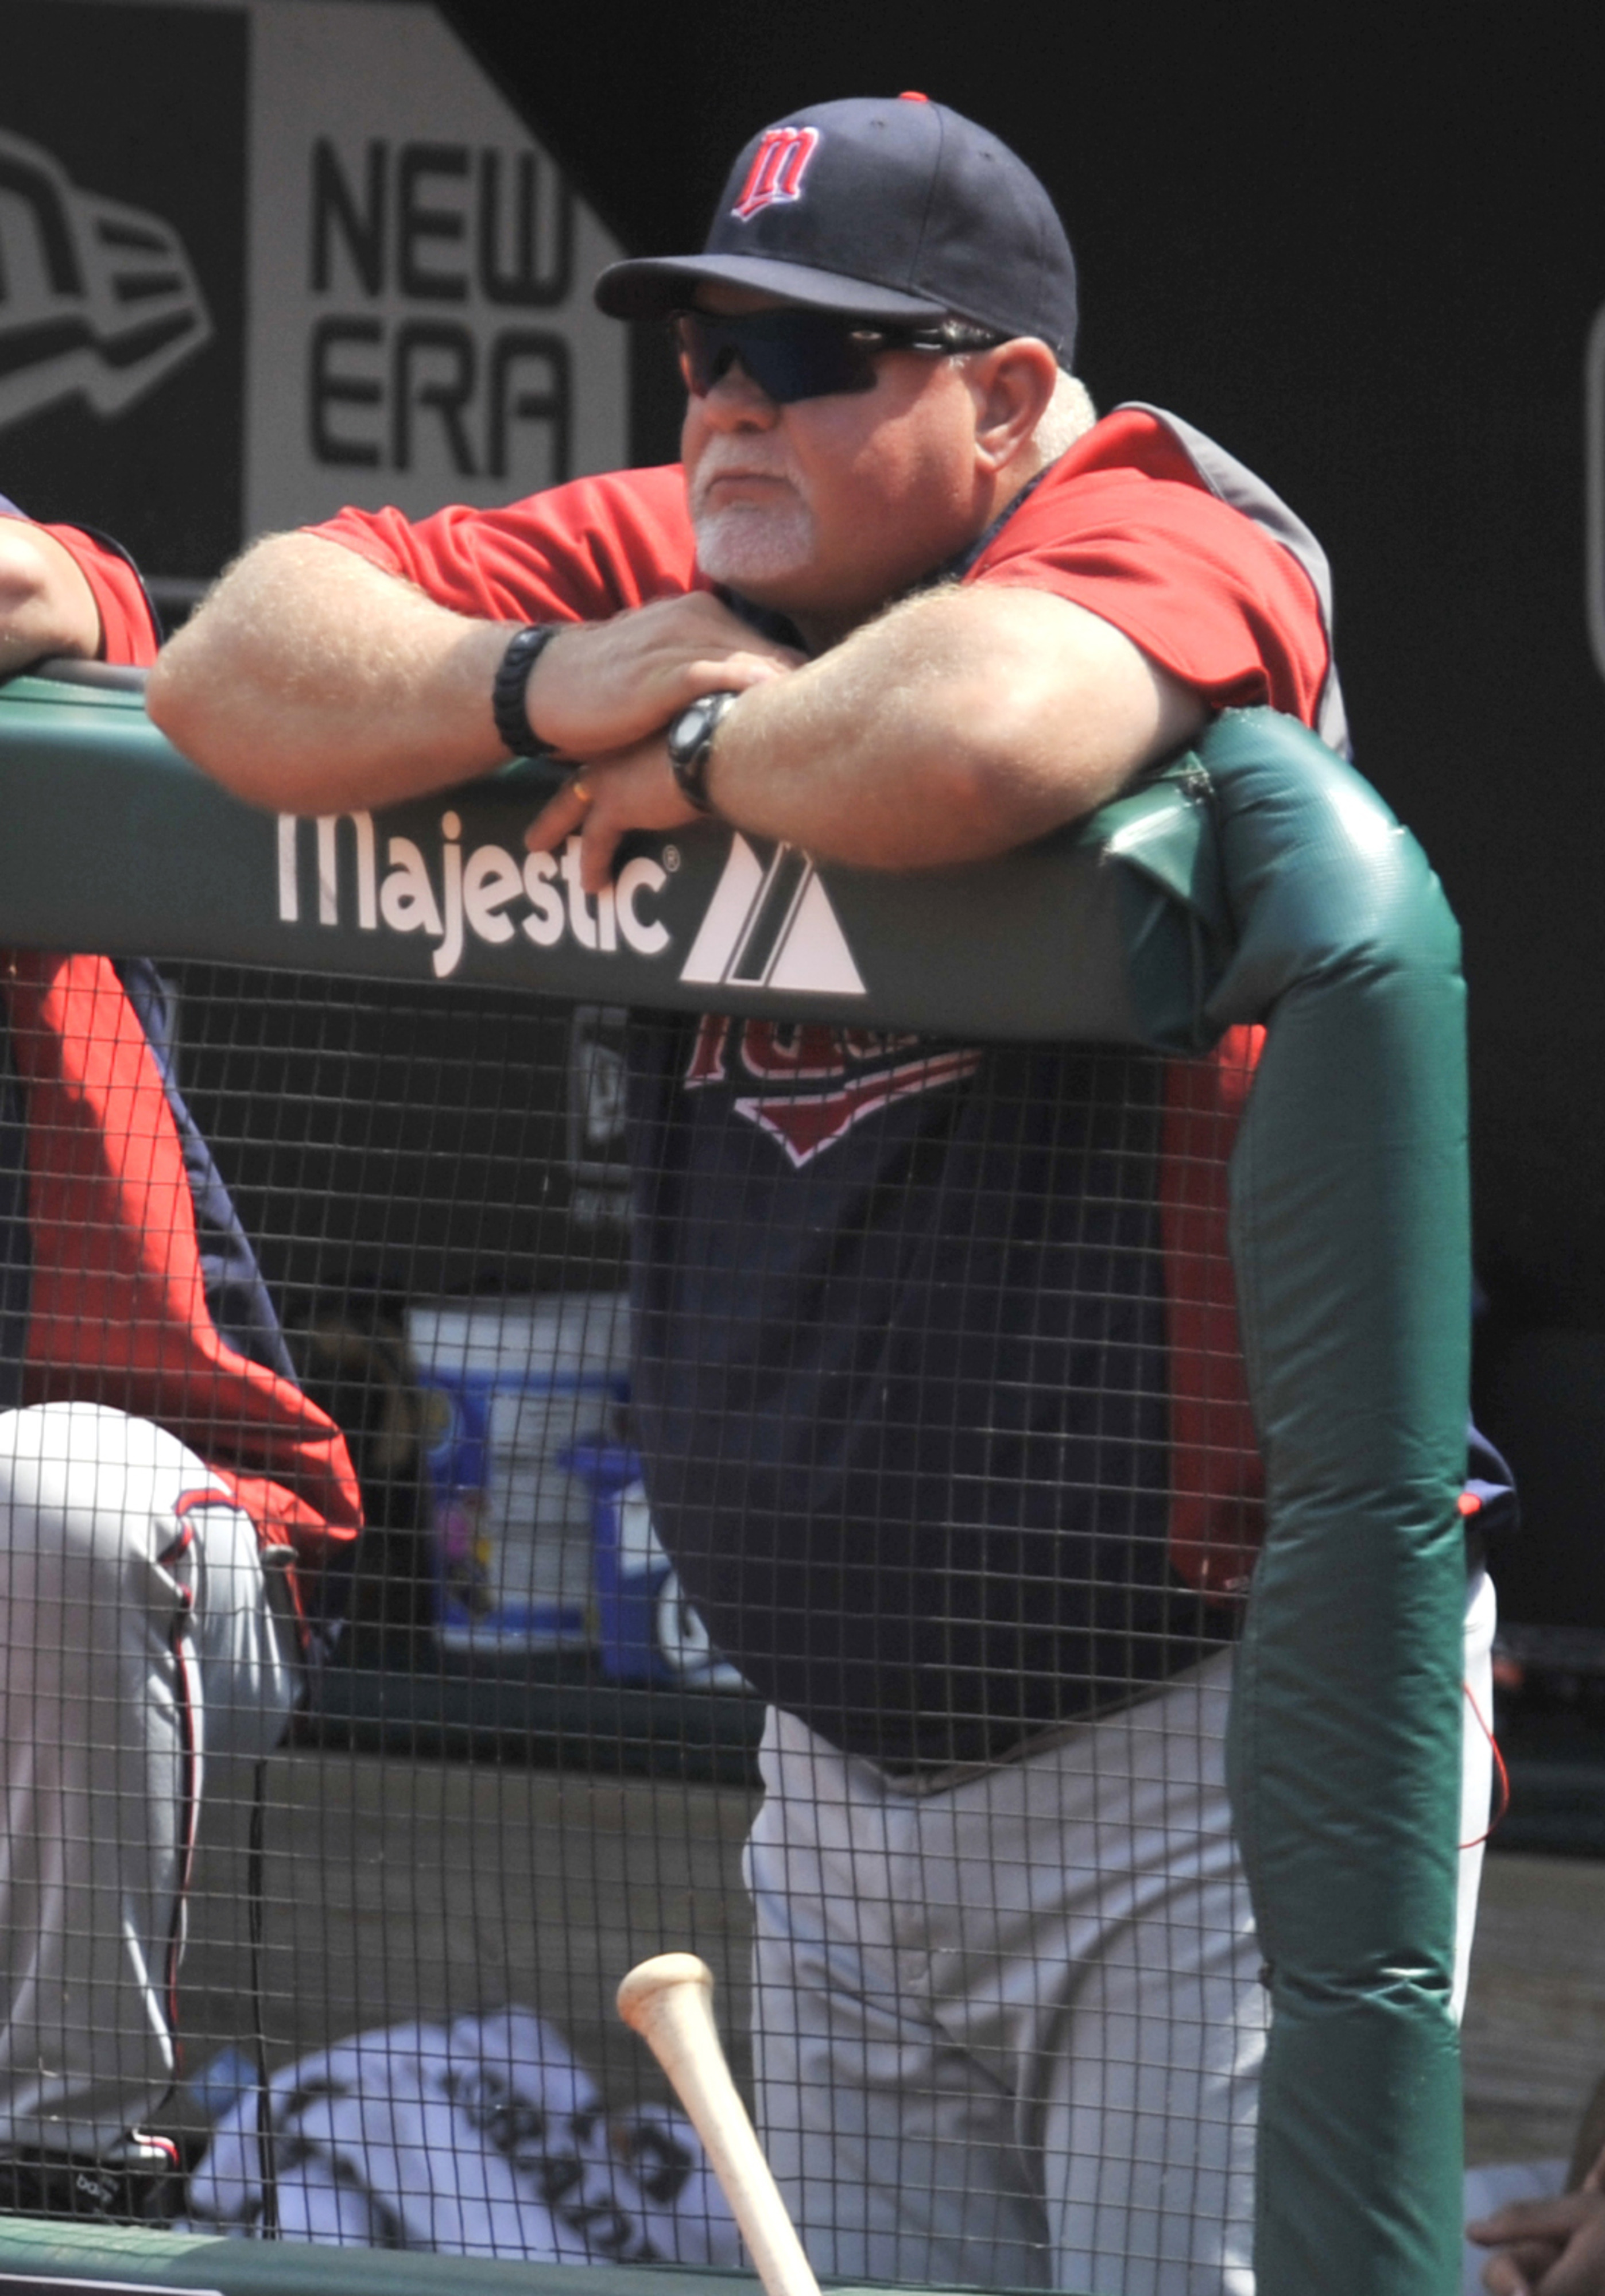 Aug 8, 2012; Cleveland, OH, USA; Minnesota Twins manager Ron Gardenhire (35) watches the action in the third inning against the Cleveland Indians at Progressive Field. Mandatory Credit: David Richard-US PRESSWIRE